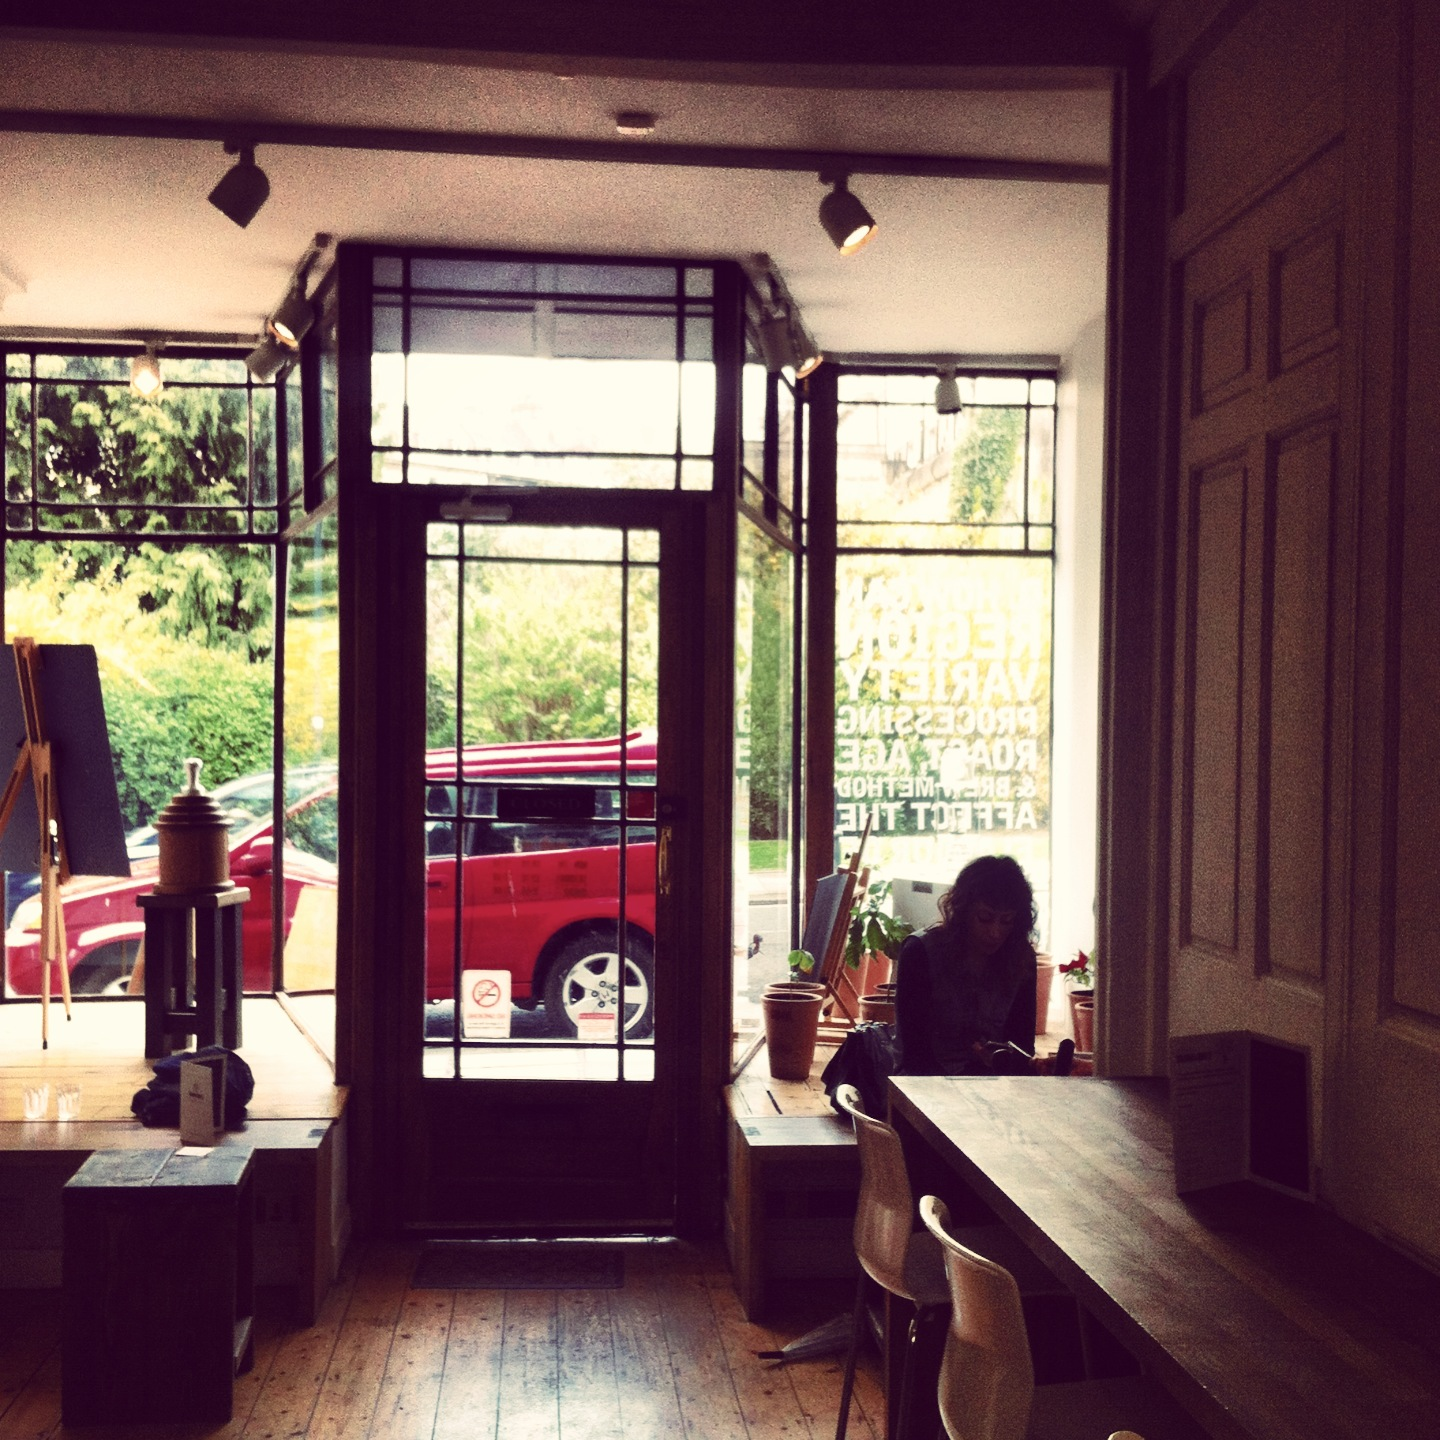 View to the outside from the inside of the cafe